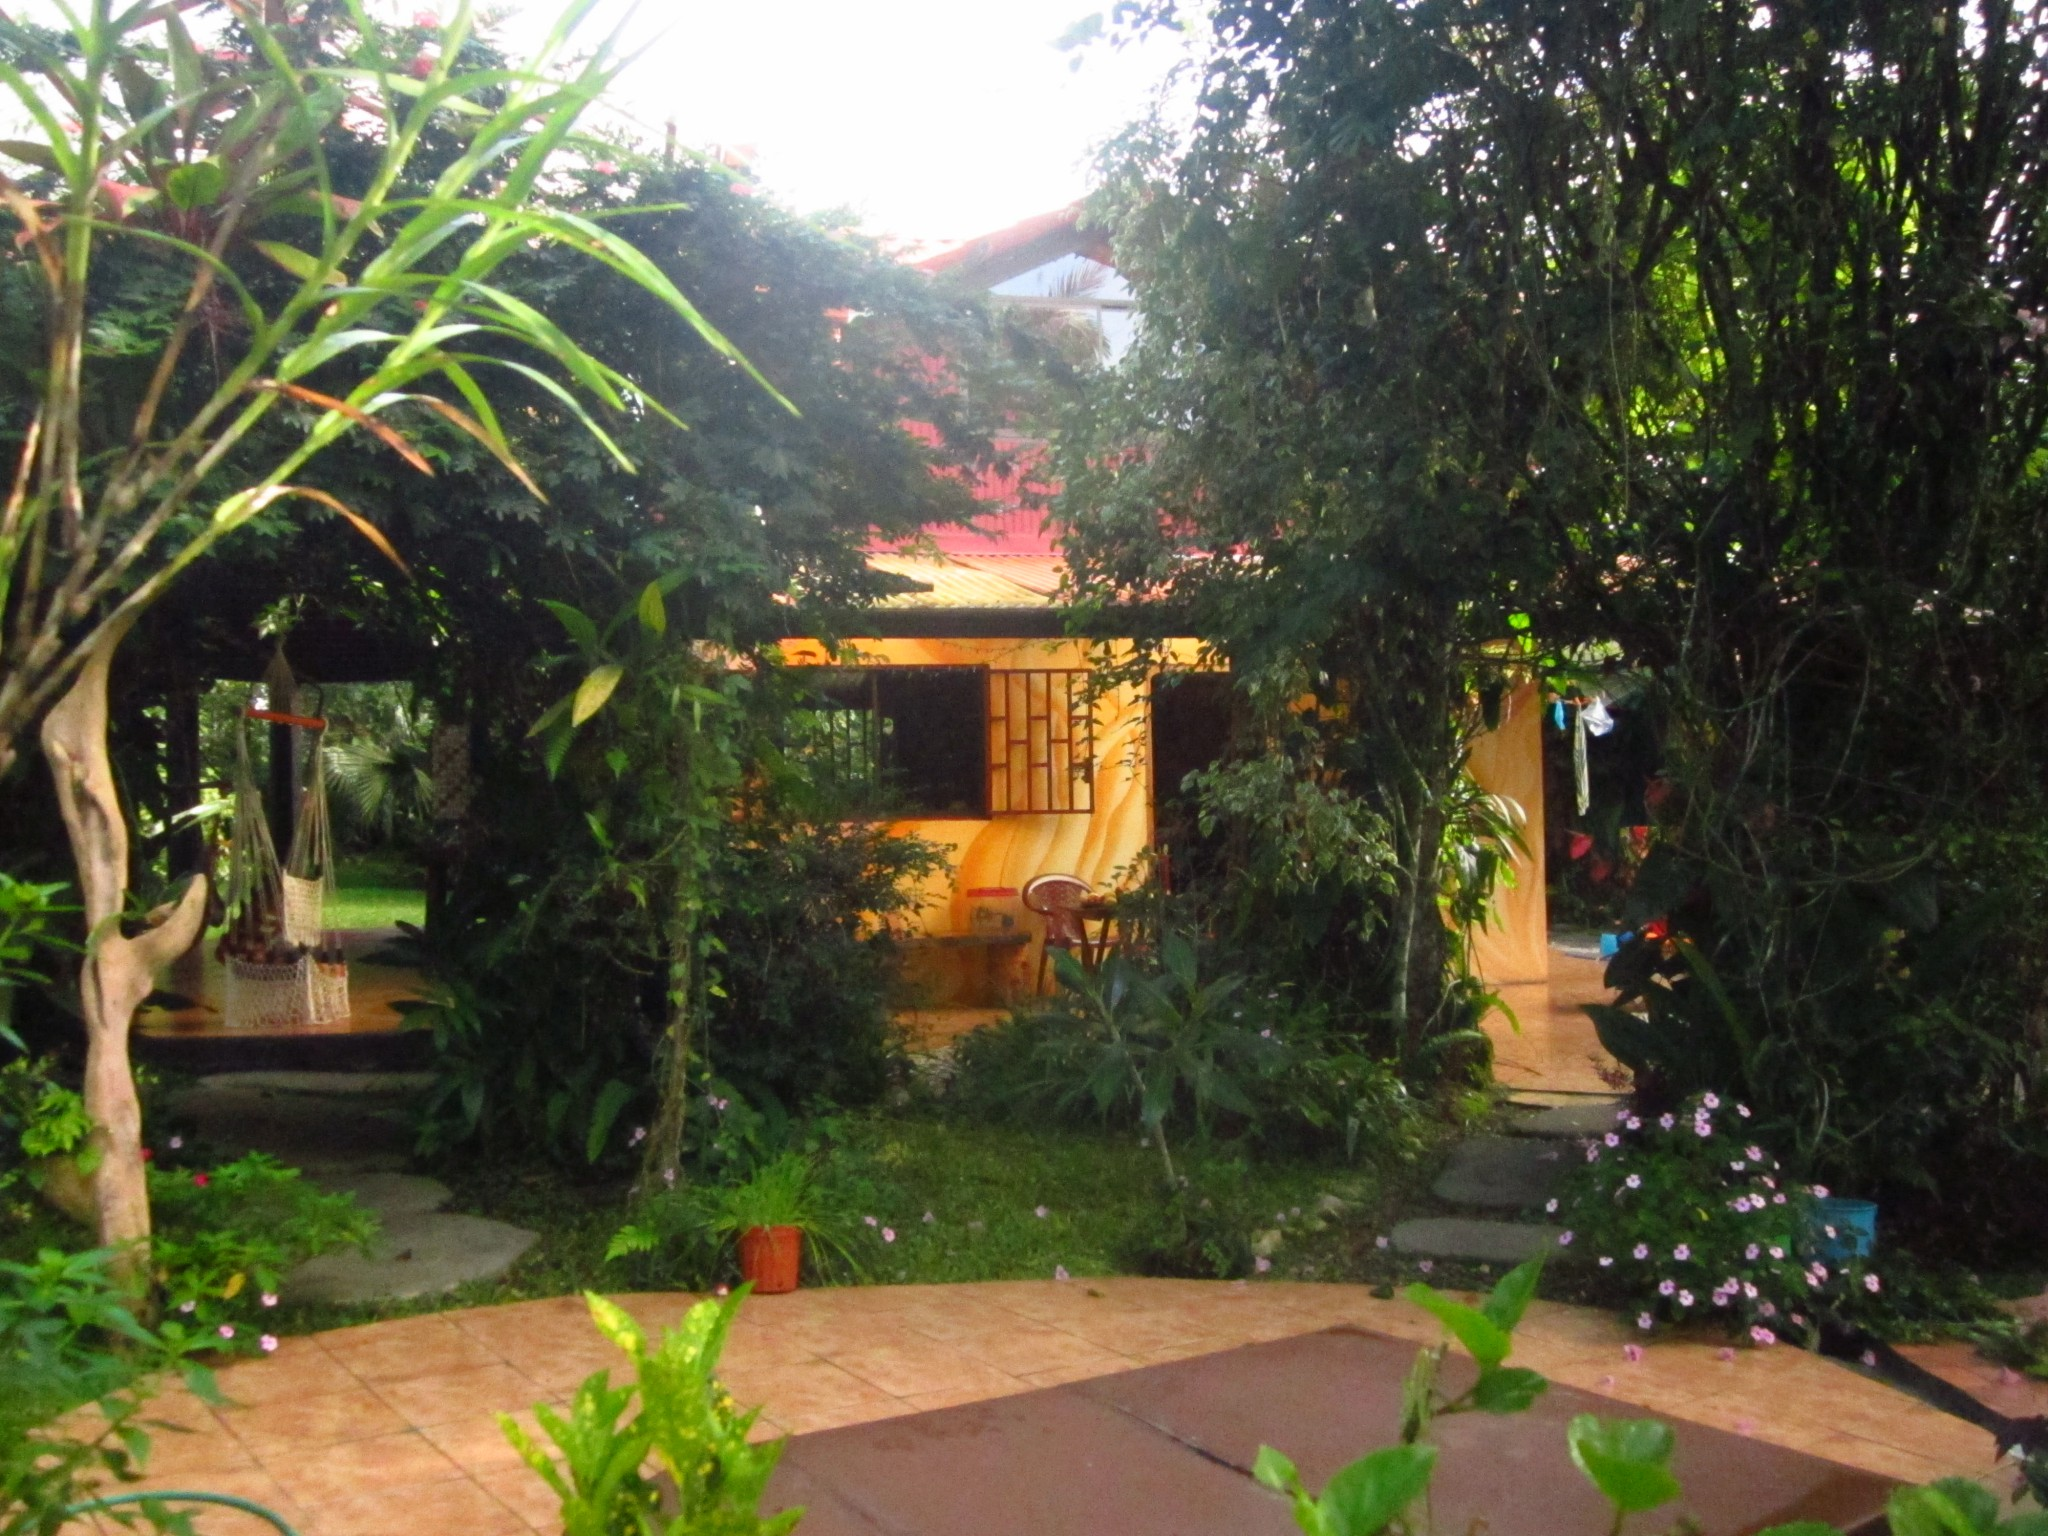 Charming House And Botanical Garden For Sale In Southern Costa Rica Mountains